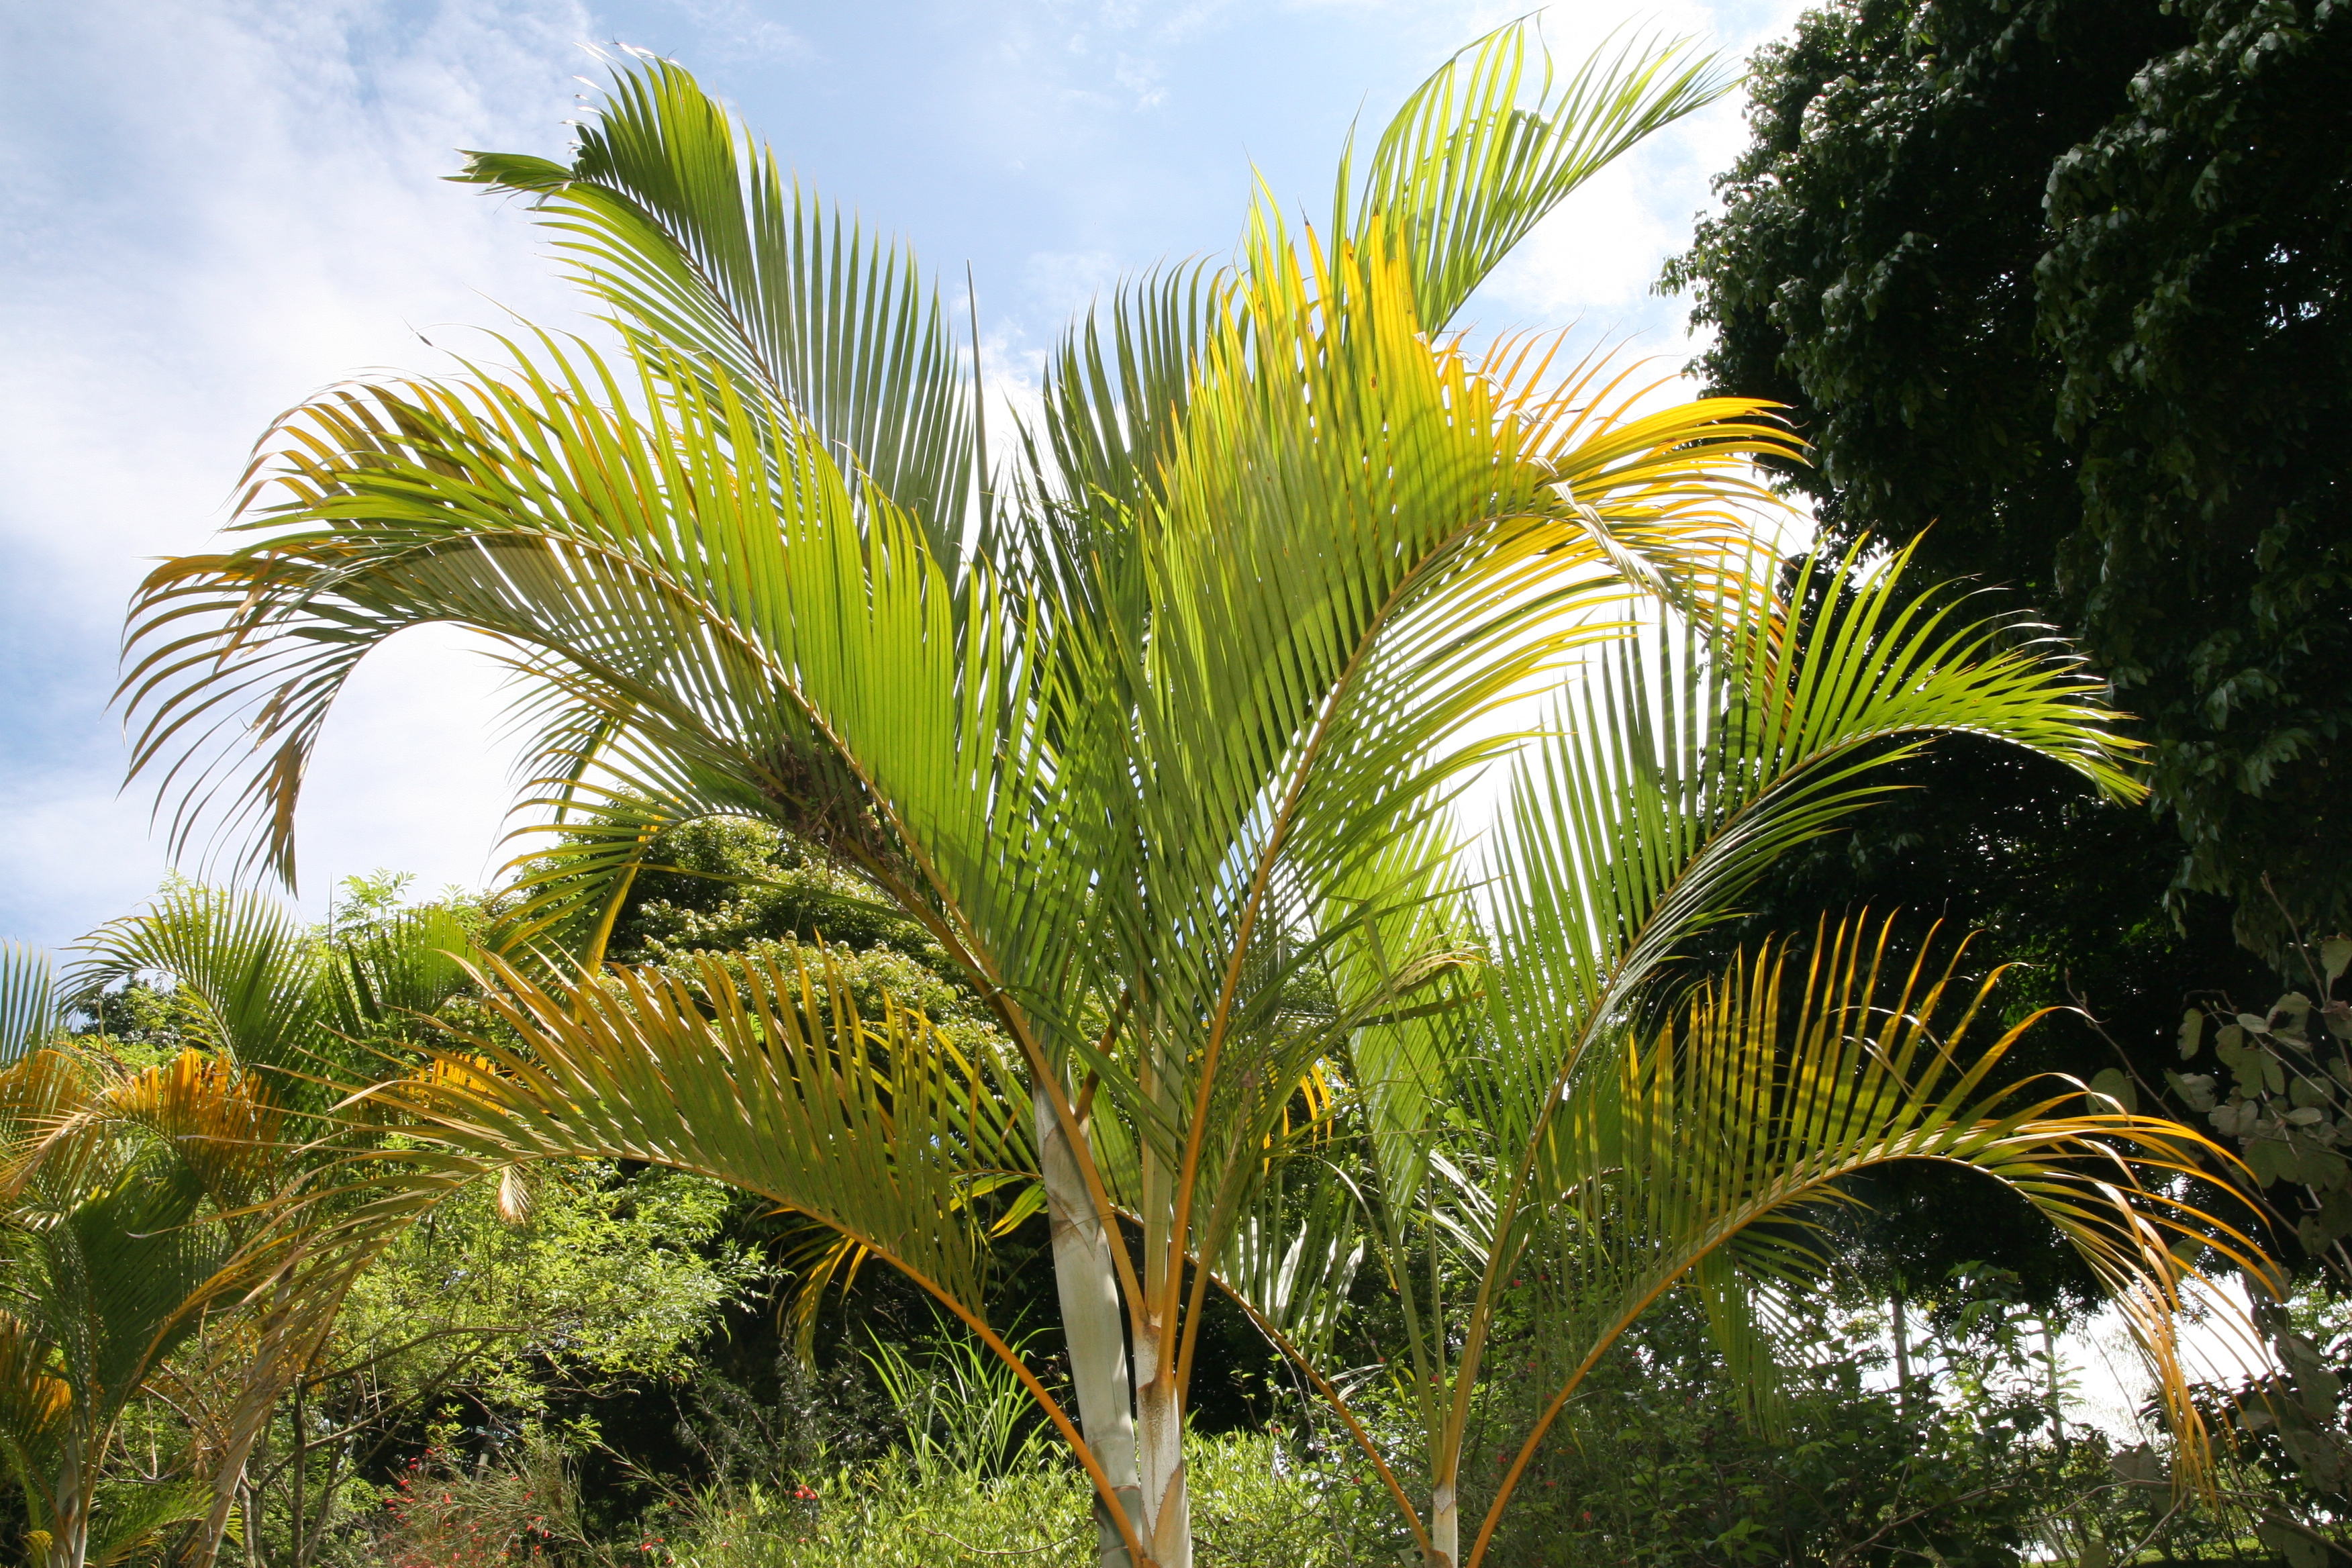 Dypsis Lutescens Wikipedia File Dypsis Lutescens 30zz Jpg Wikimedia Commons